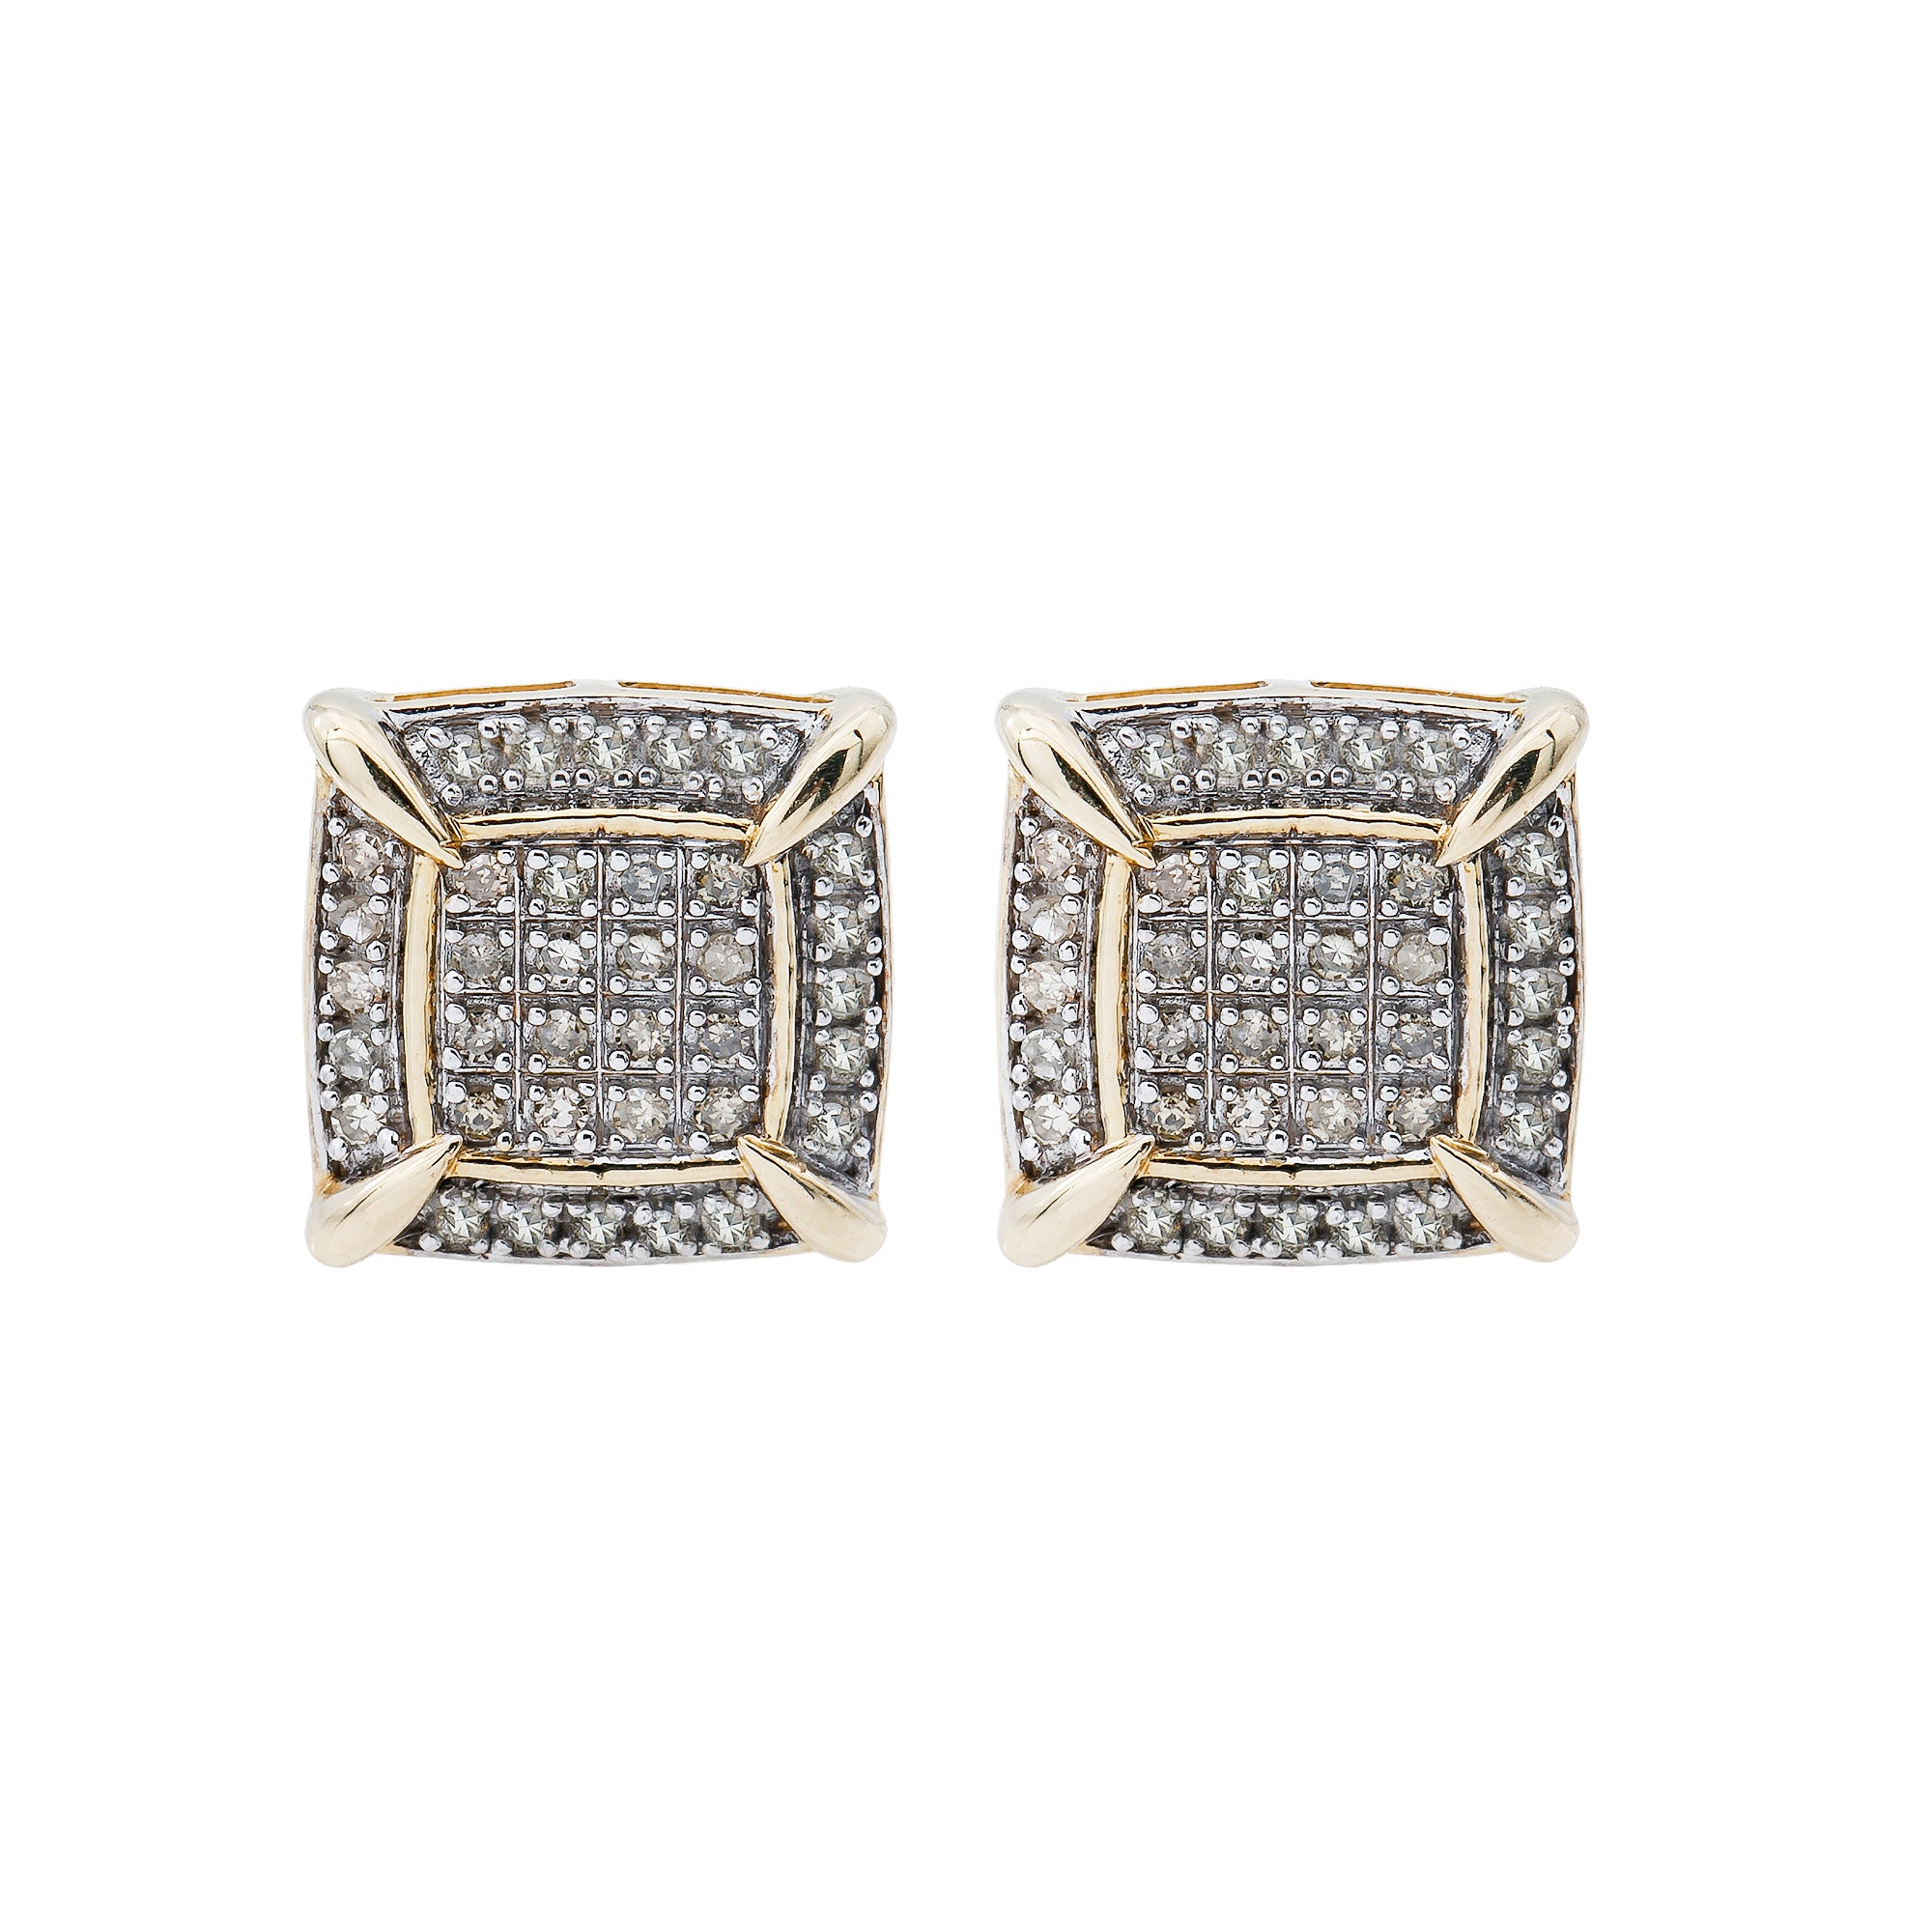 10K Yellow Gold Unisex Earrings with 0.38 CT Diamond  Metal: 14K Yellow Gold